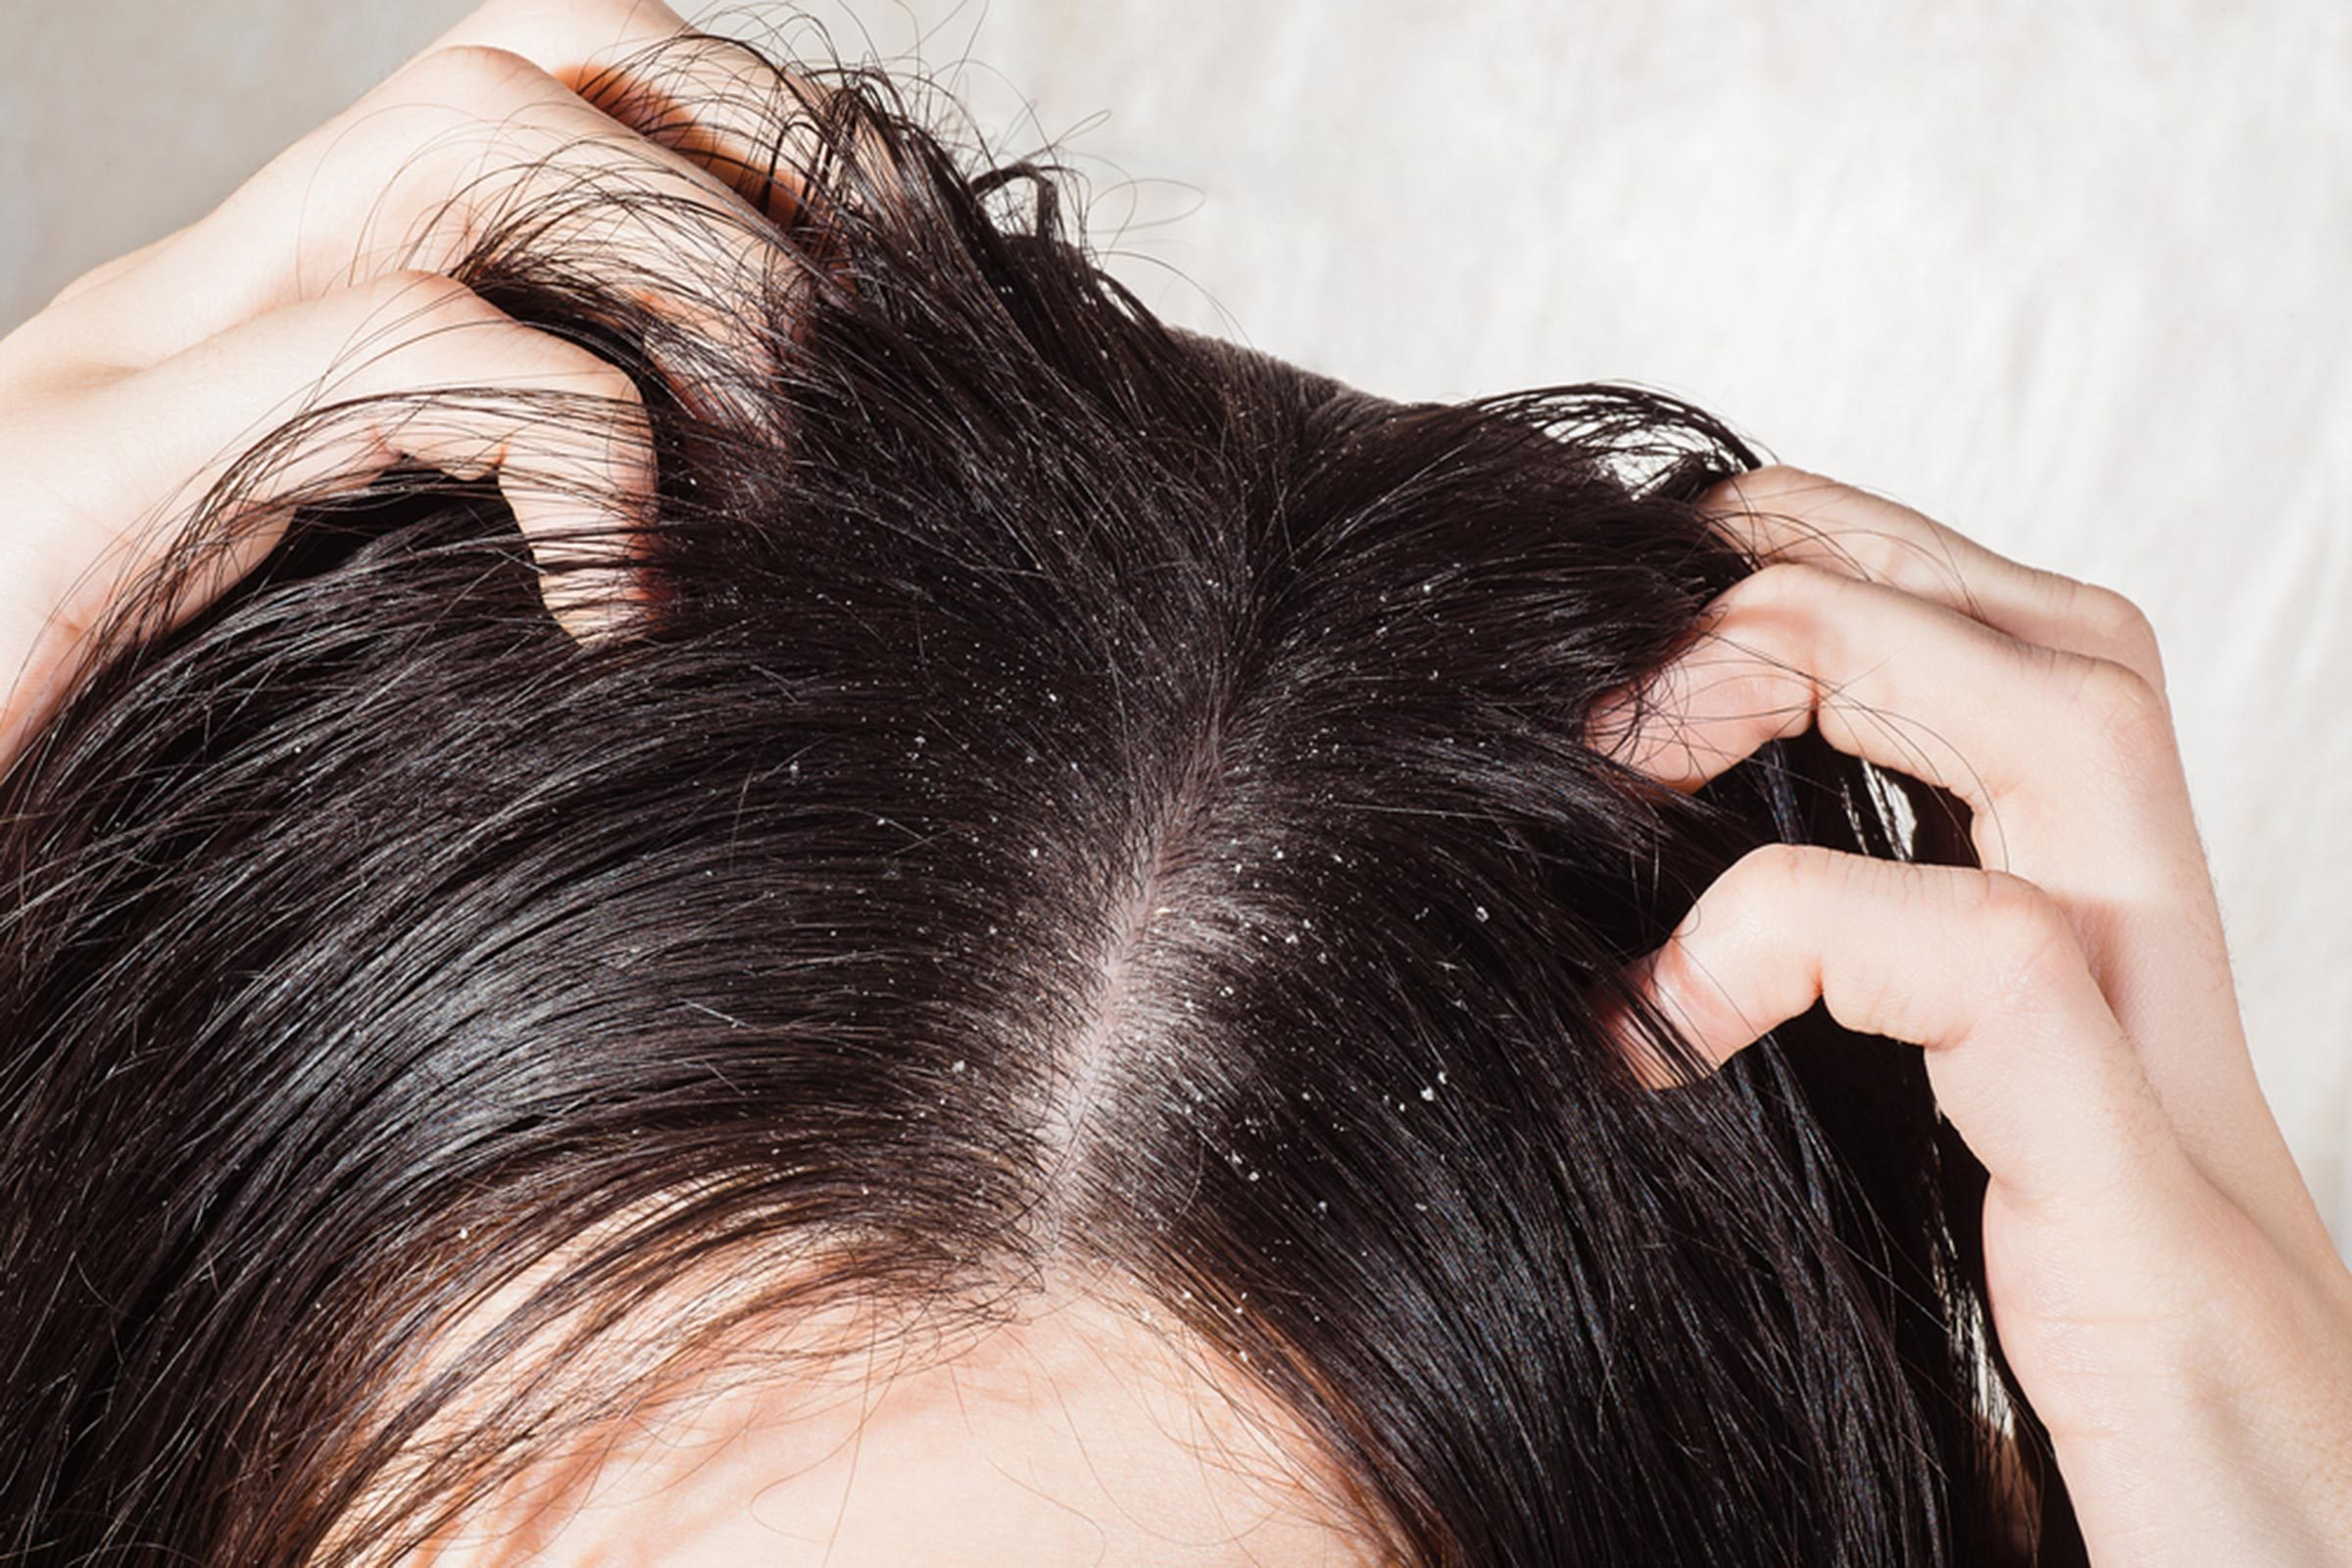 Greasy Hair: Surprising Causes Behind Oily Locks  Reader